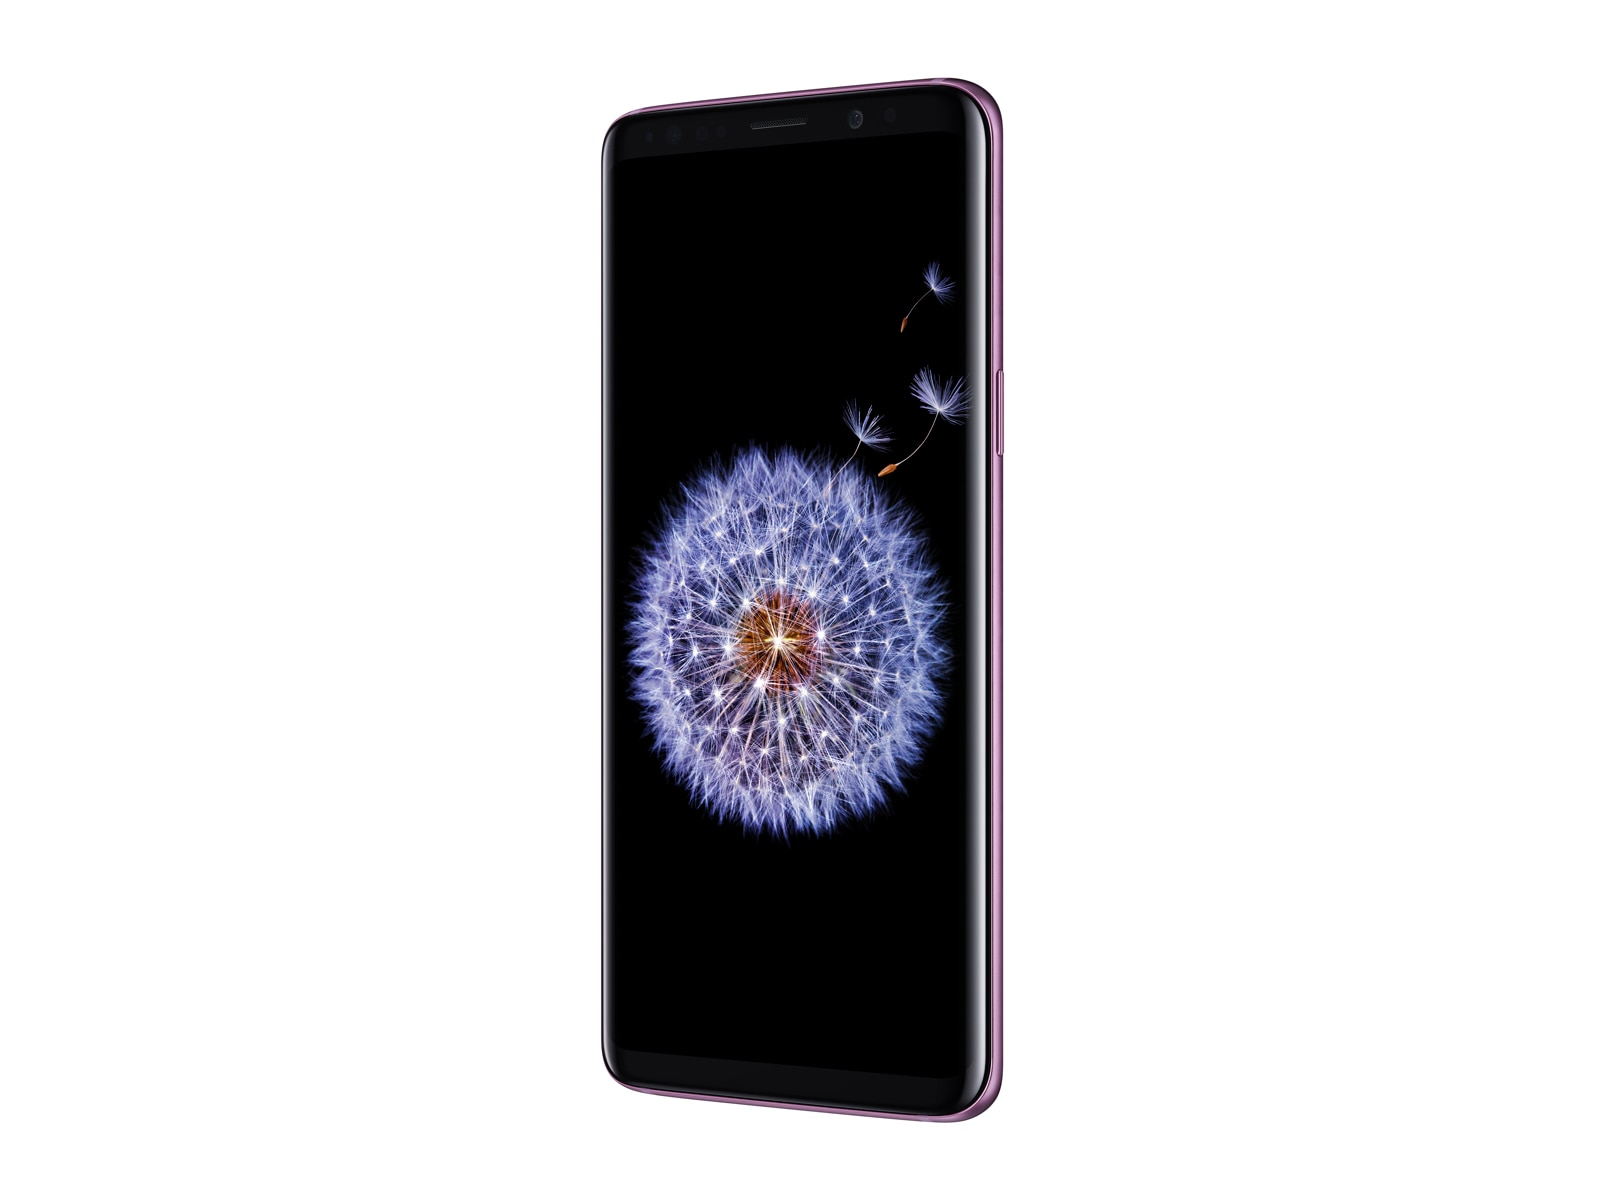 Thumbnail image of Galaxy S9 64GB (Xfinity Mobile)